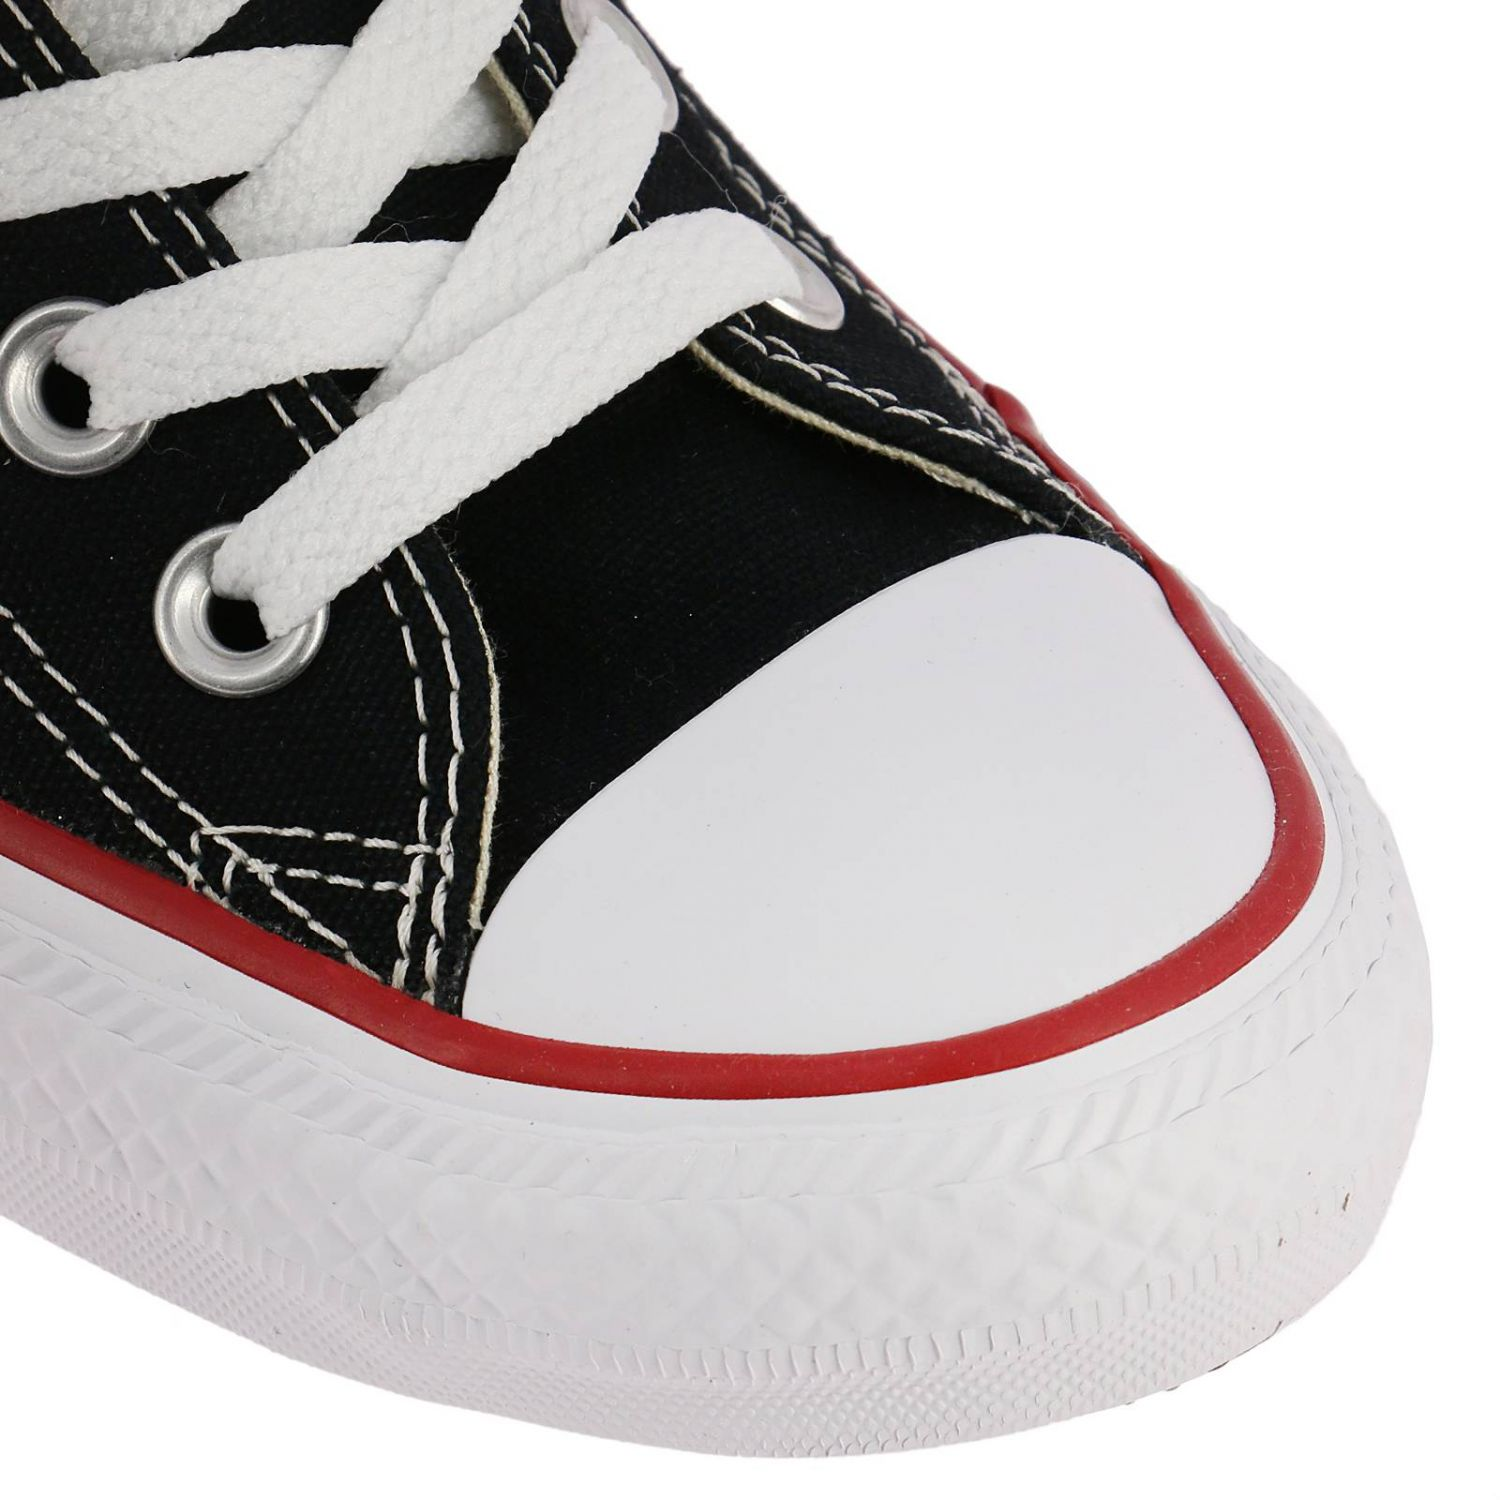 Sneakers All Star Limited Edition in canvas con zeppa interna